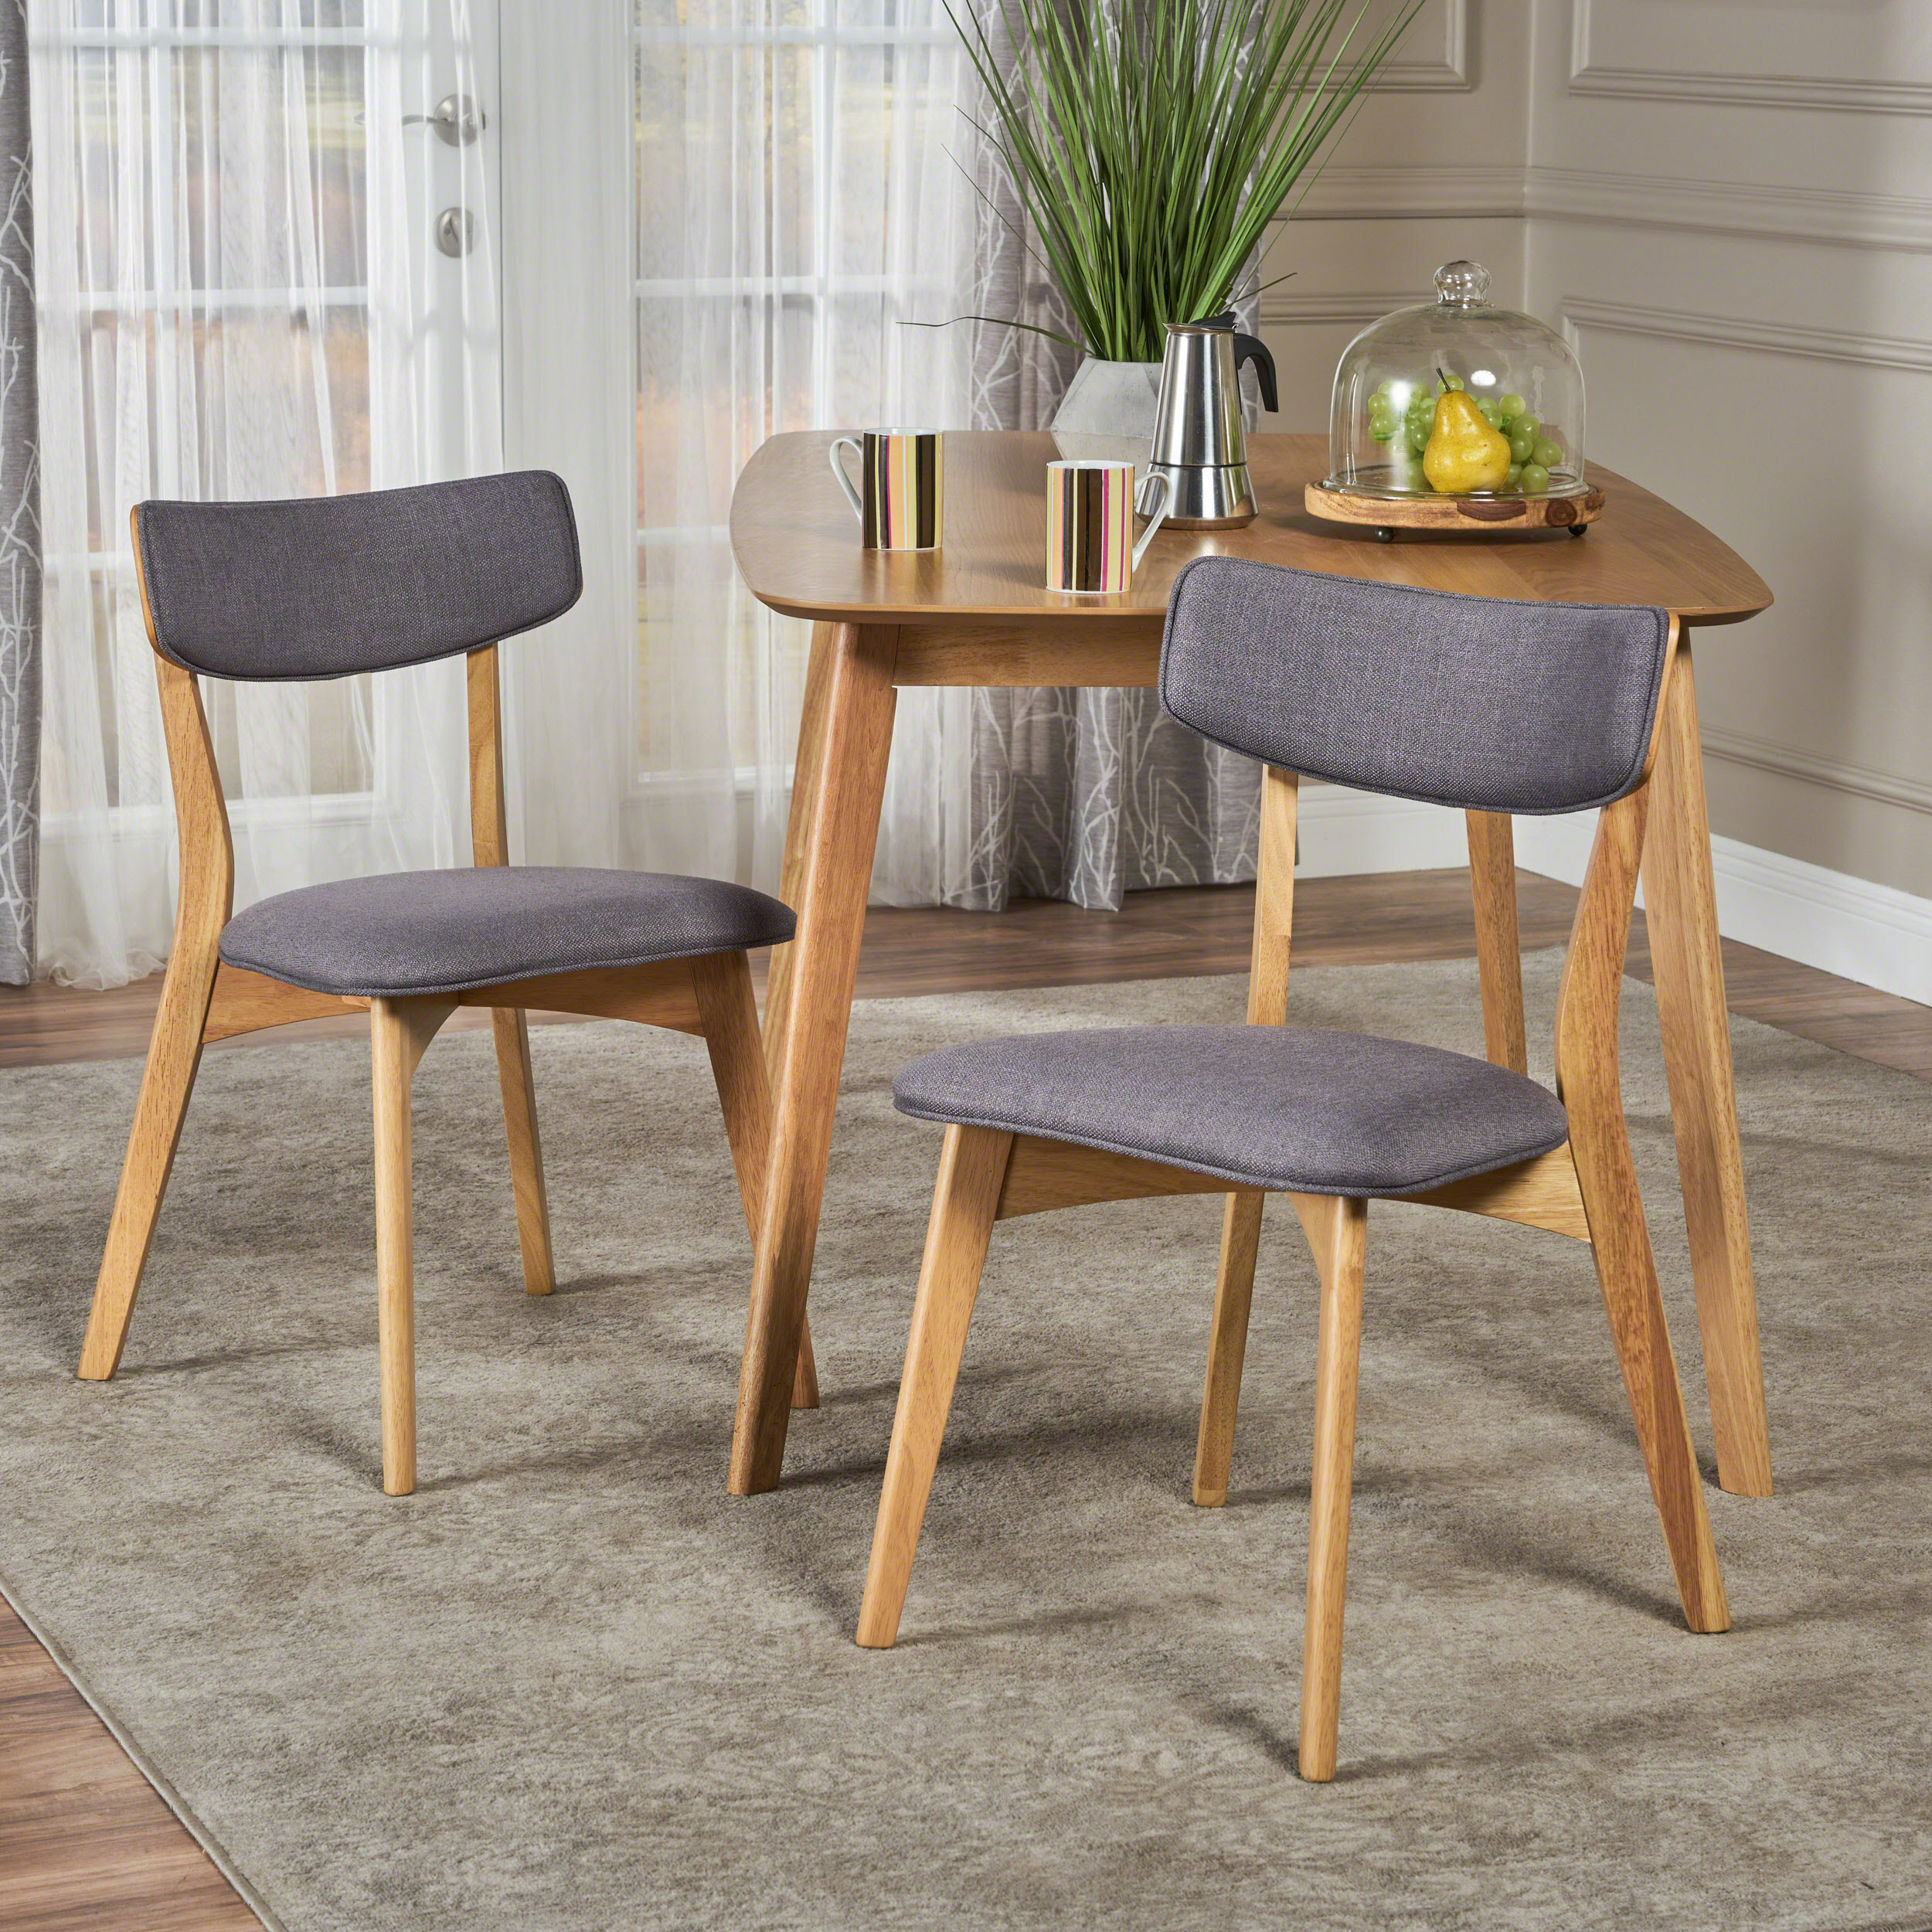 Molly Mid Century Modern Fabric Dining Chairs with Rubberwood Frame, Set of 2, Dark Grey and Natural Oak